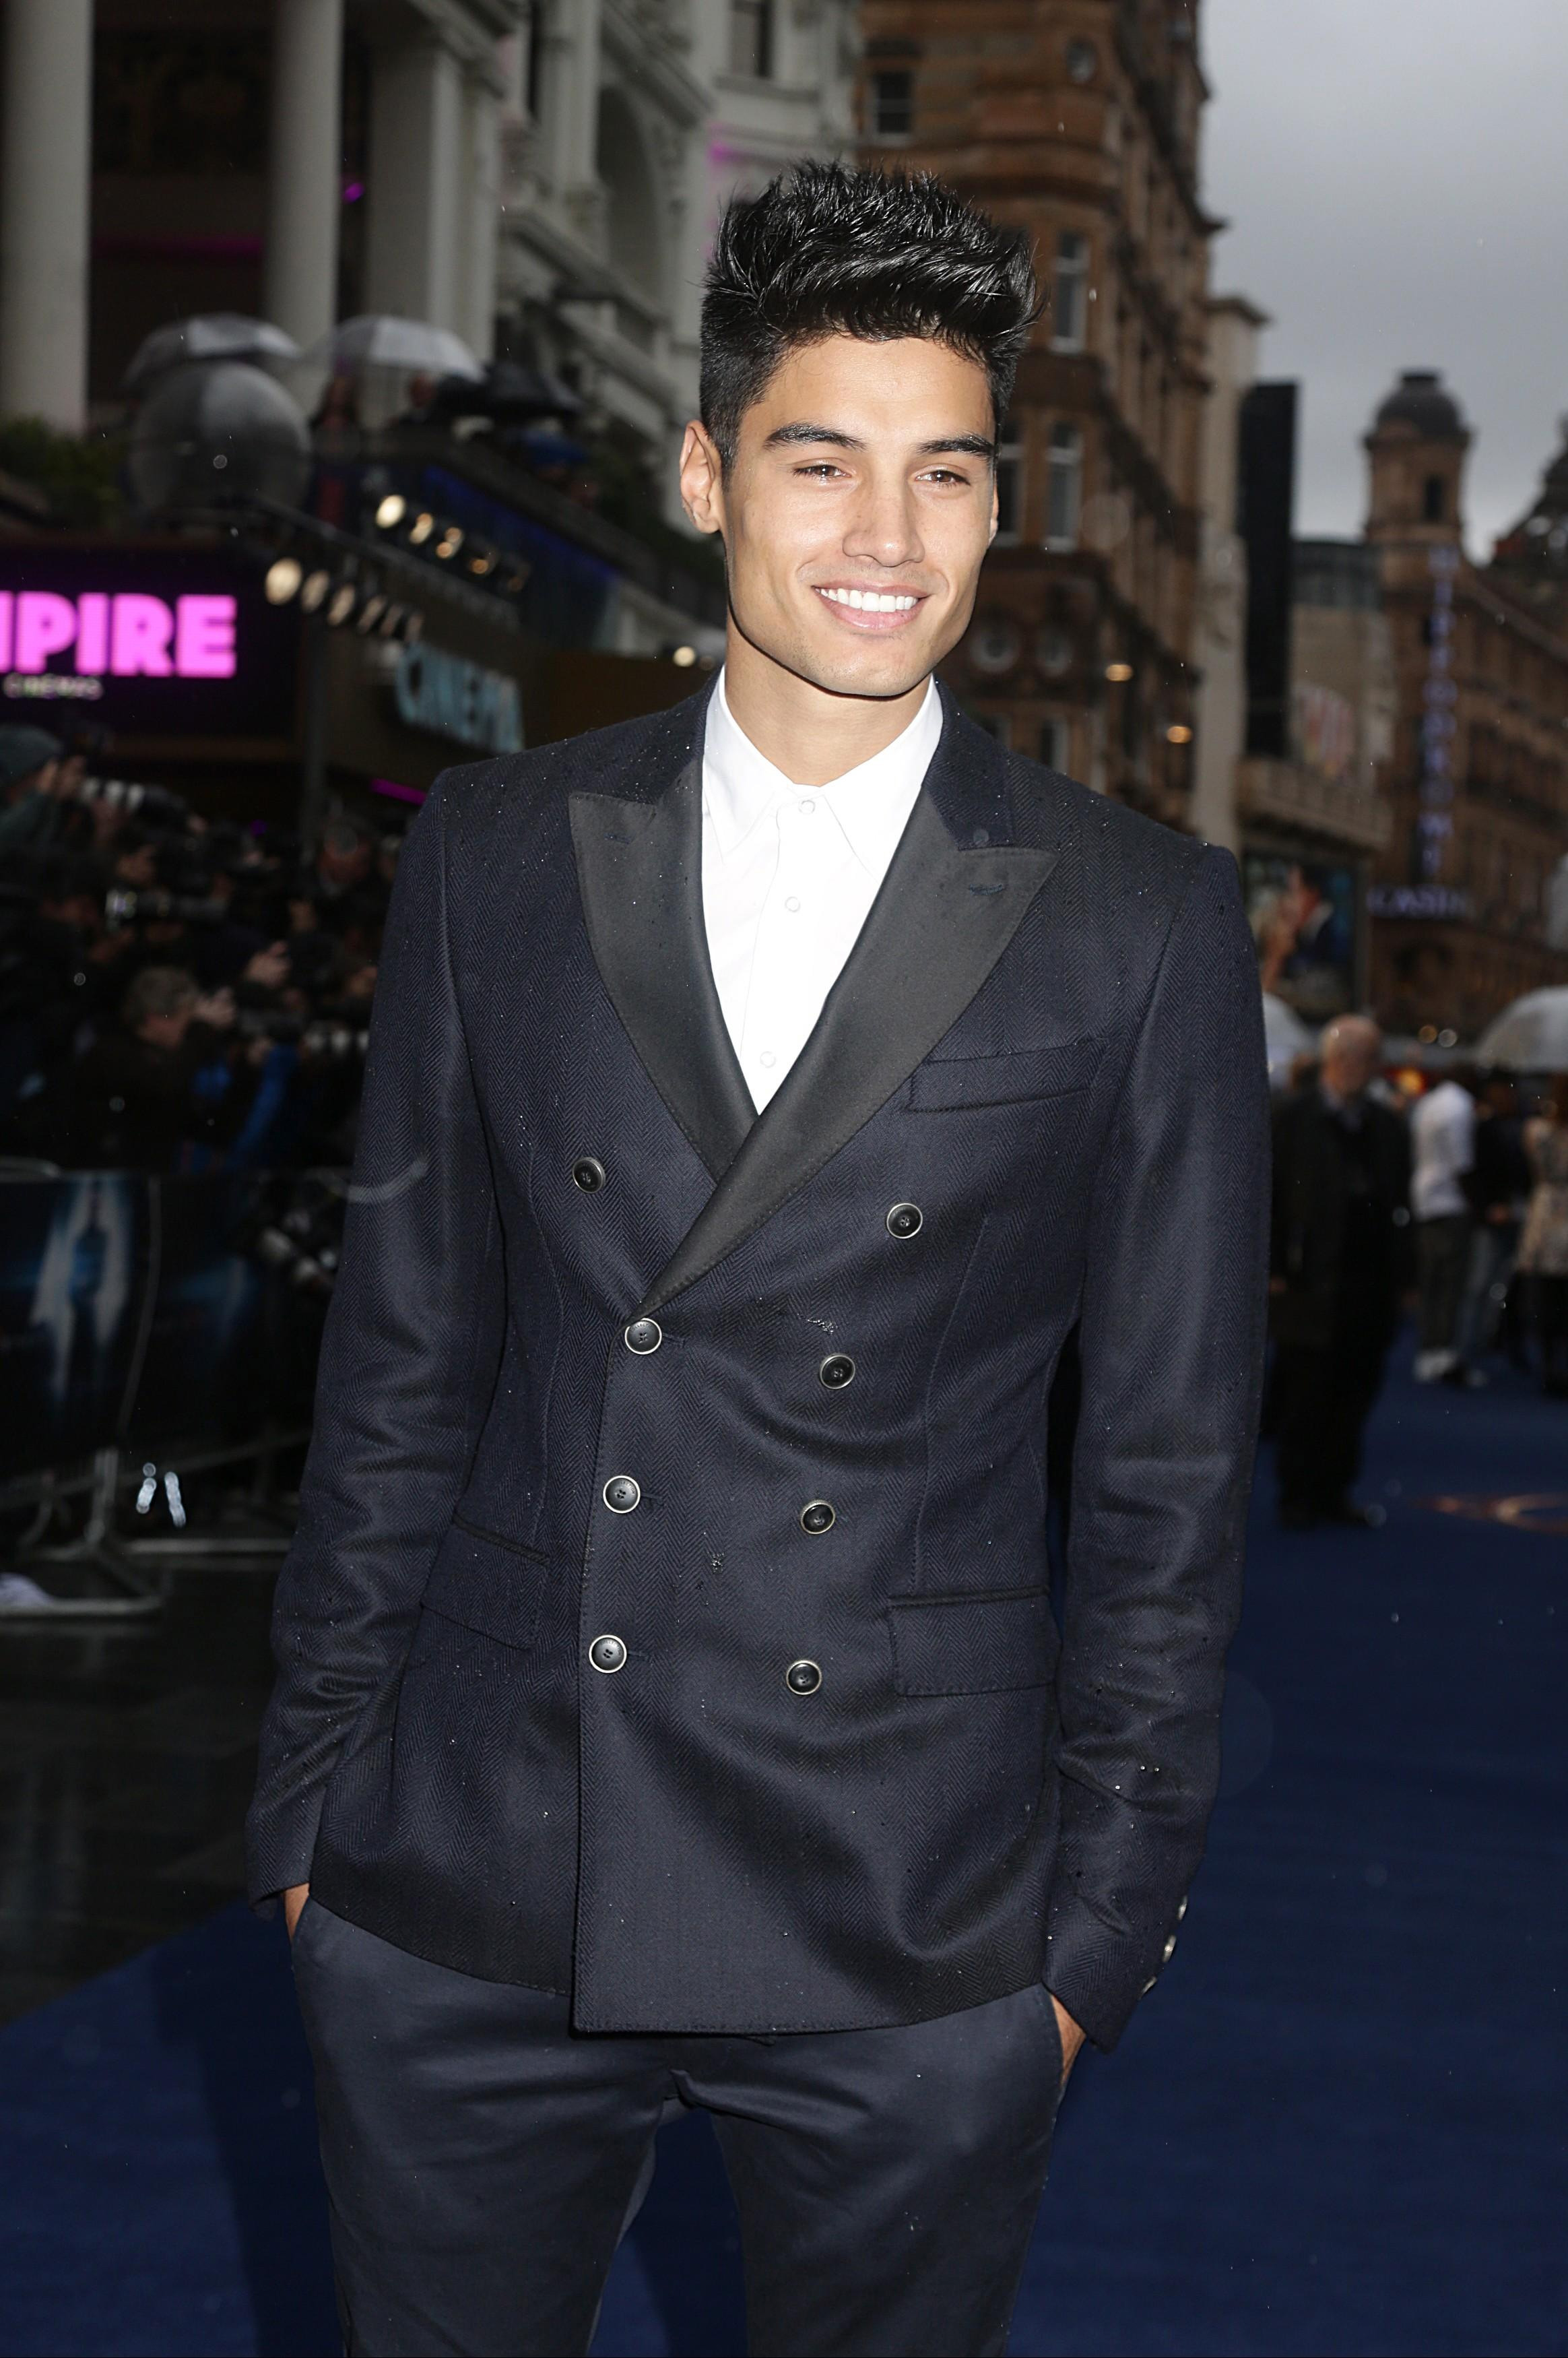 The Wanted's Siva Kaneswaran reveals Max George's love for older women